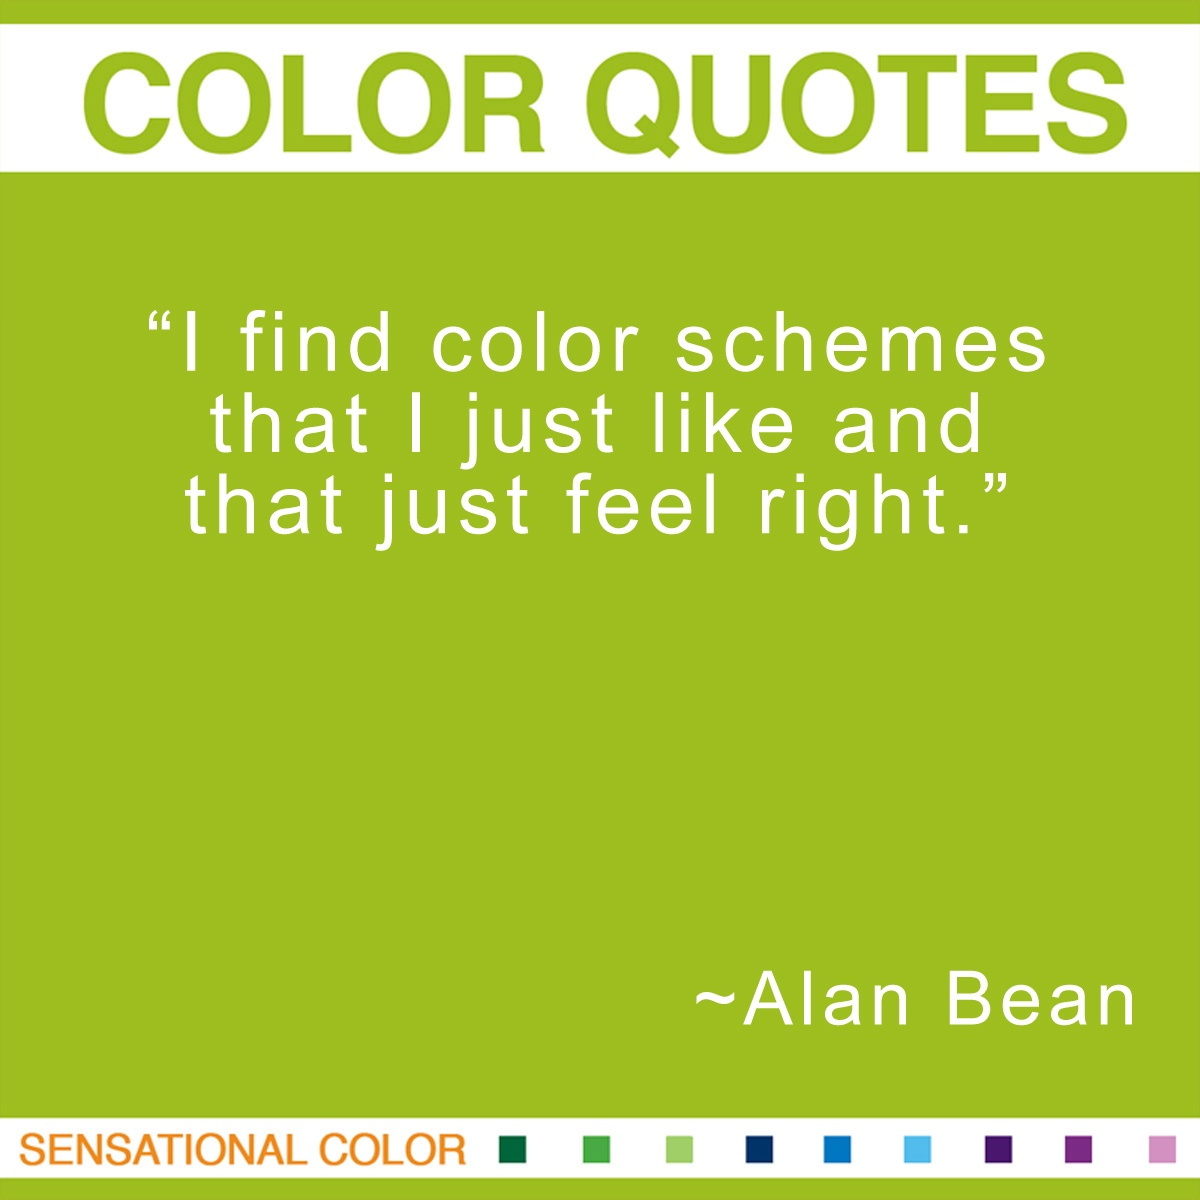 """I find color schemes that I just like and that just feel right."" - Alan Bean"